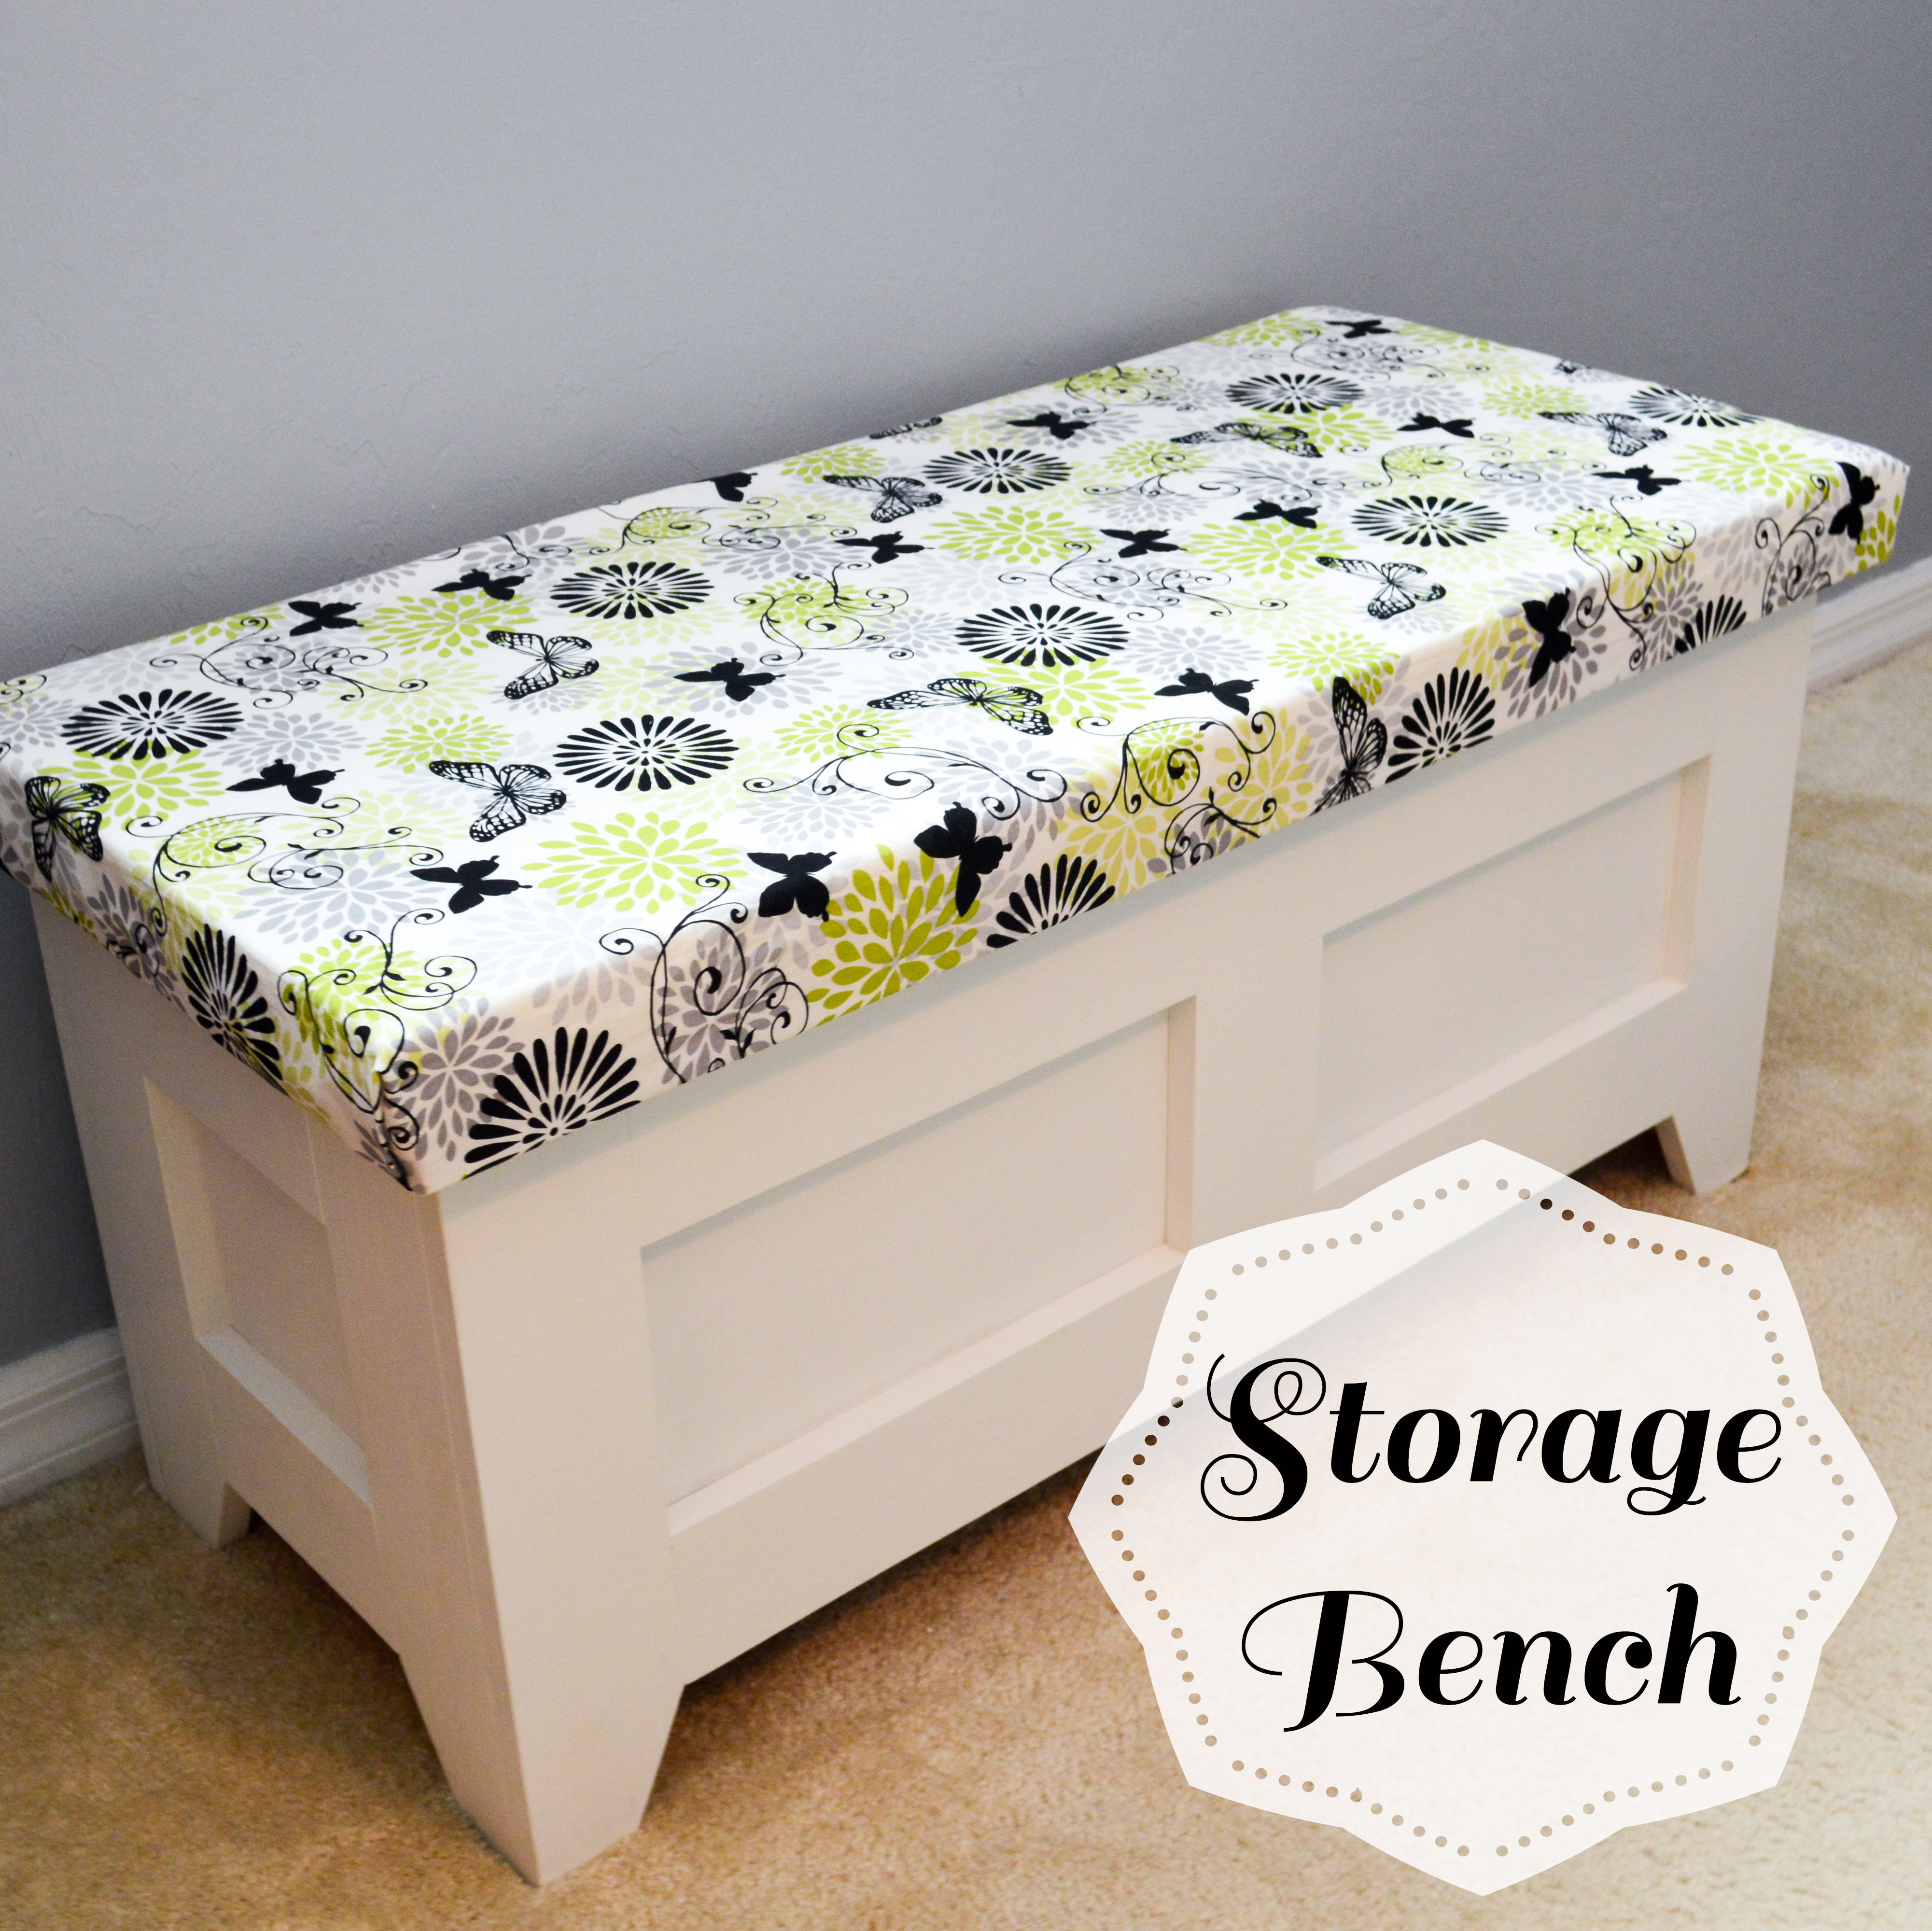 Best ideas about DIY Storage Bench . Save or Pin DIY Storage Bench • Better When Built Now.